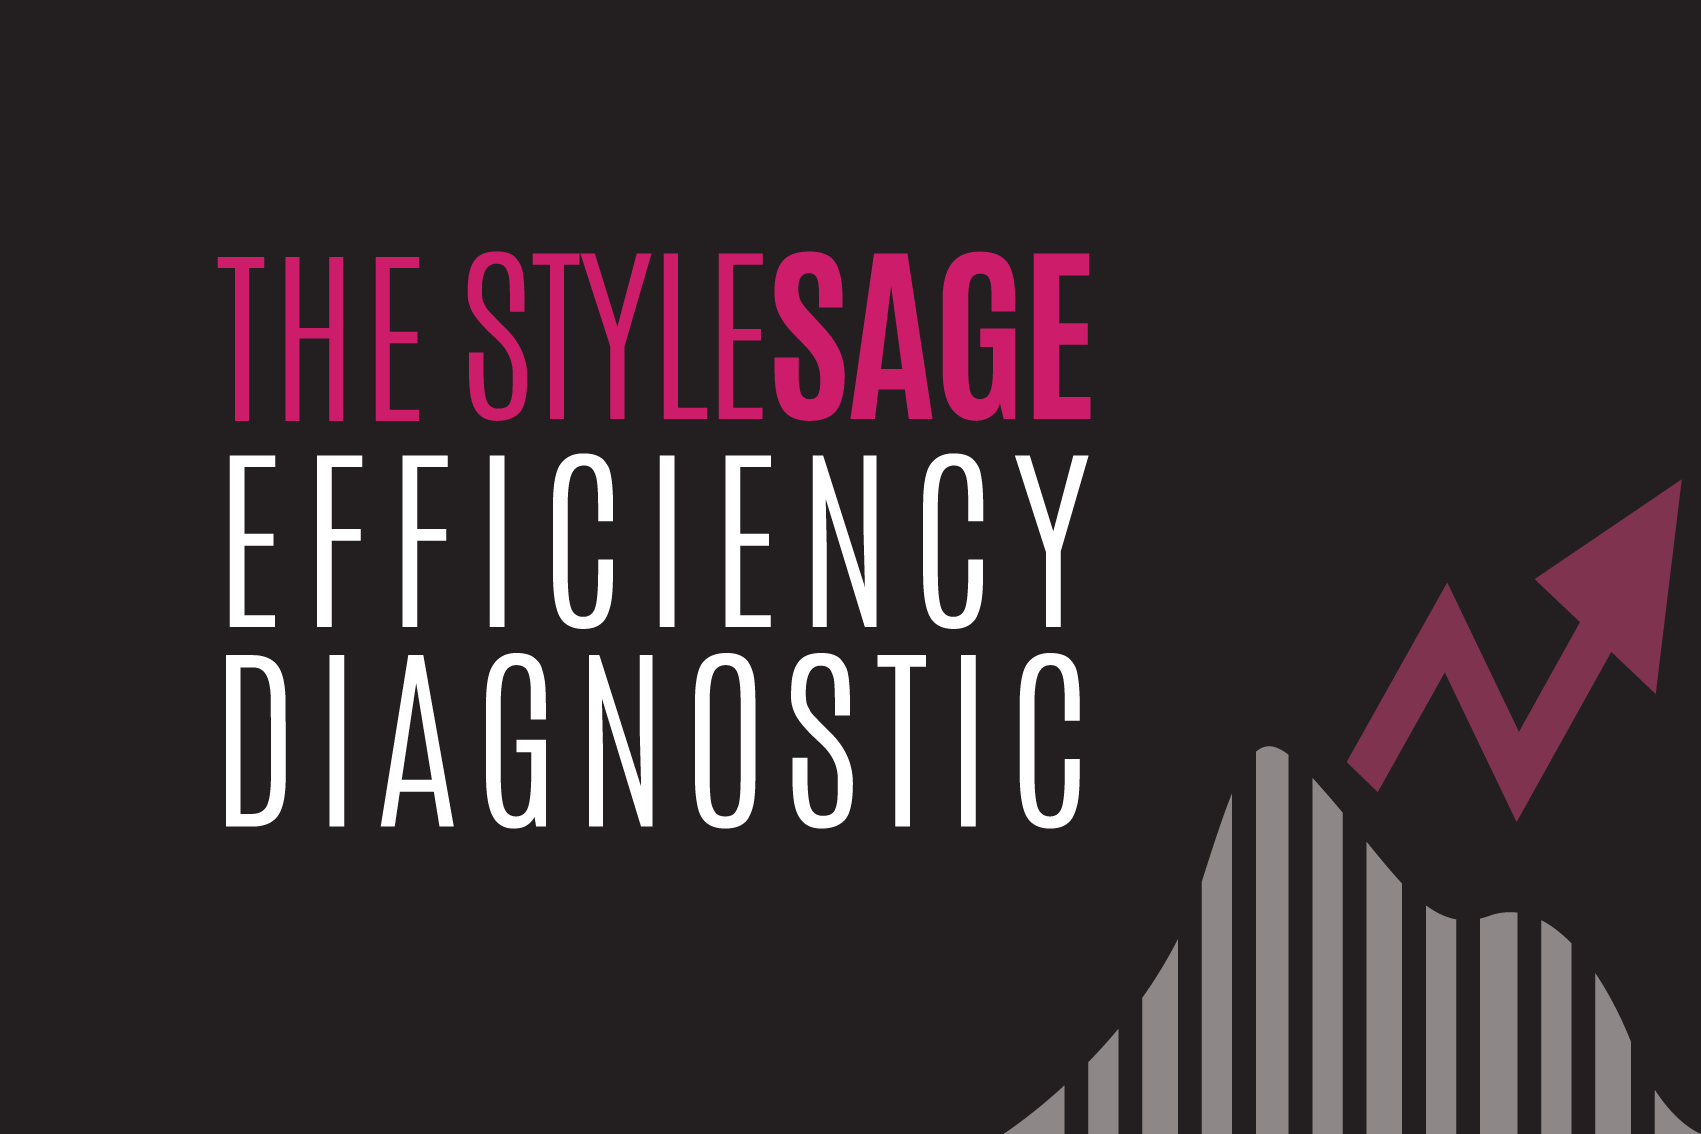 Introducing the Complimentary StyleSage Efficiency Diagnostic!